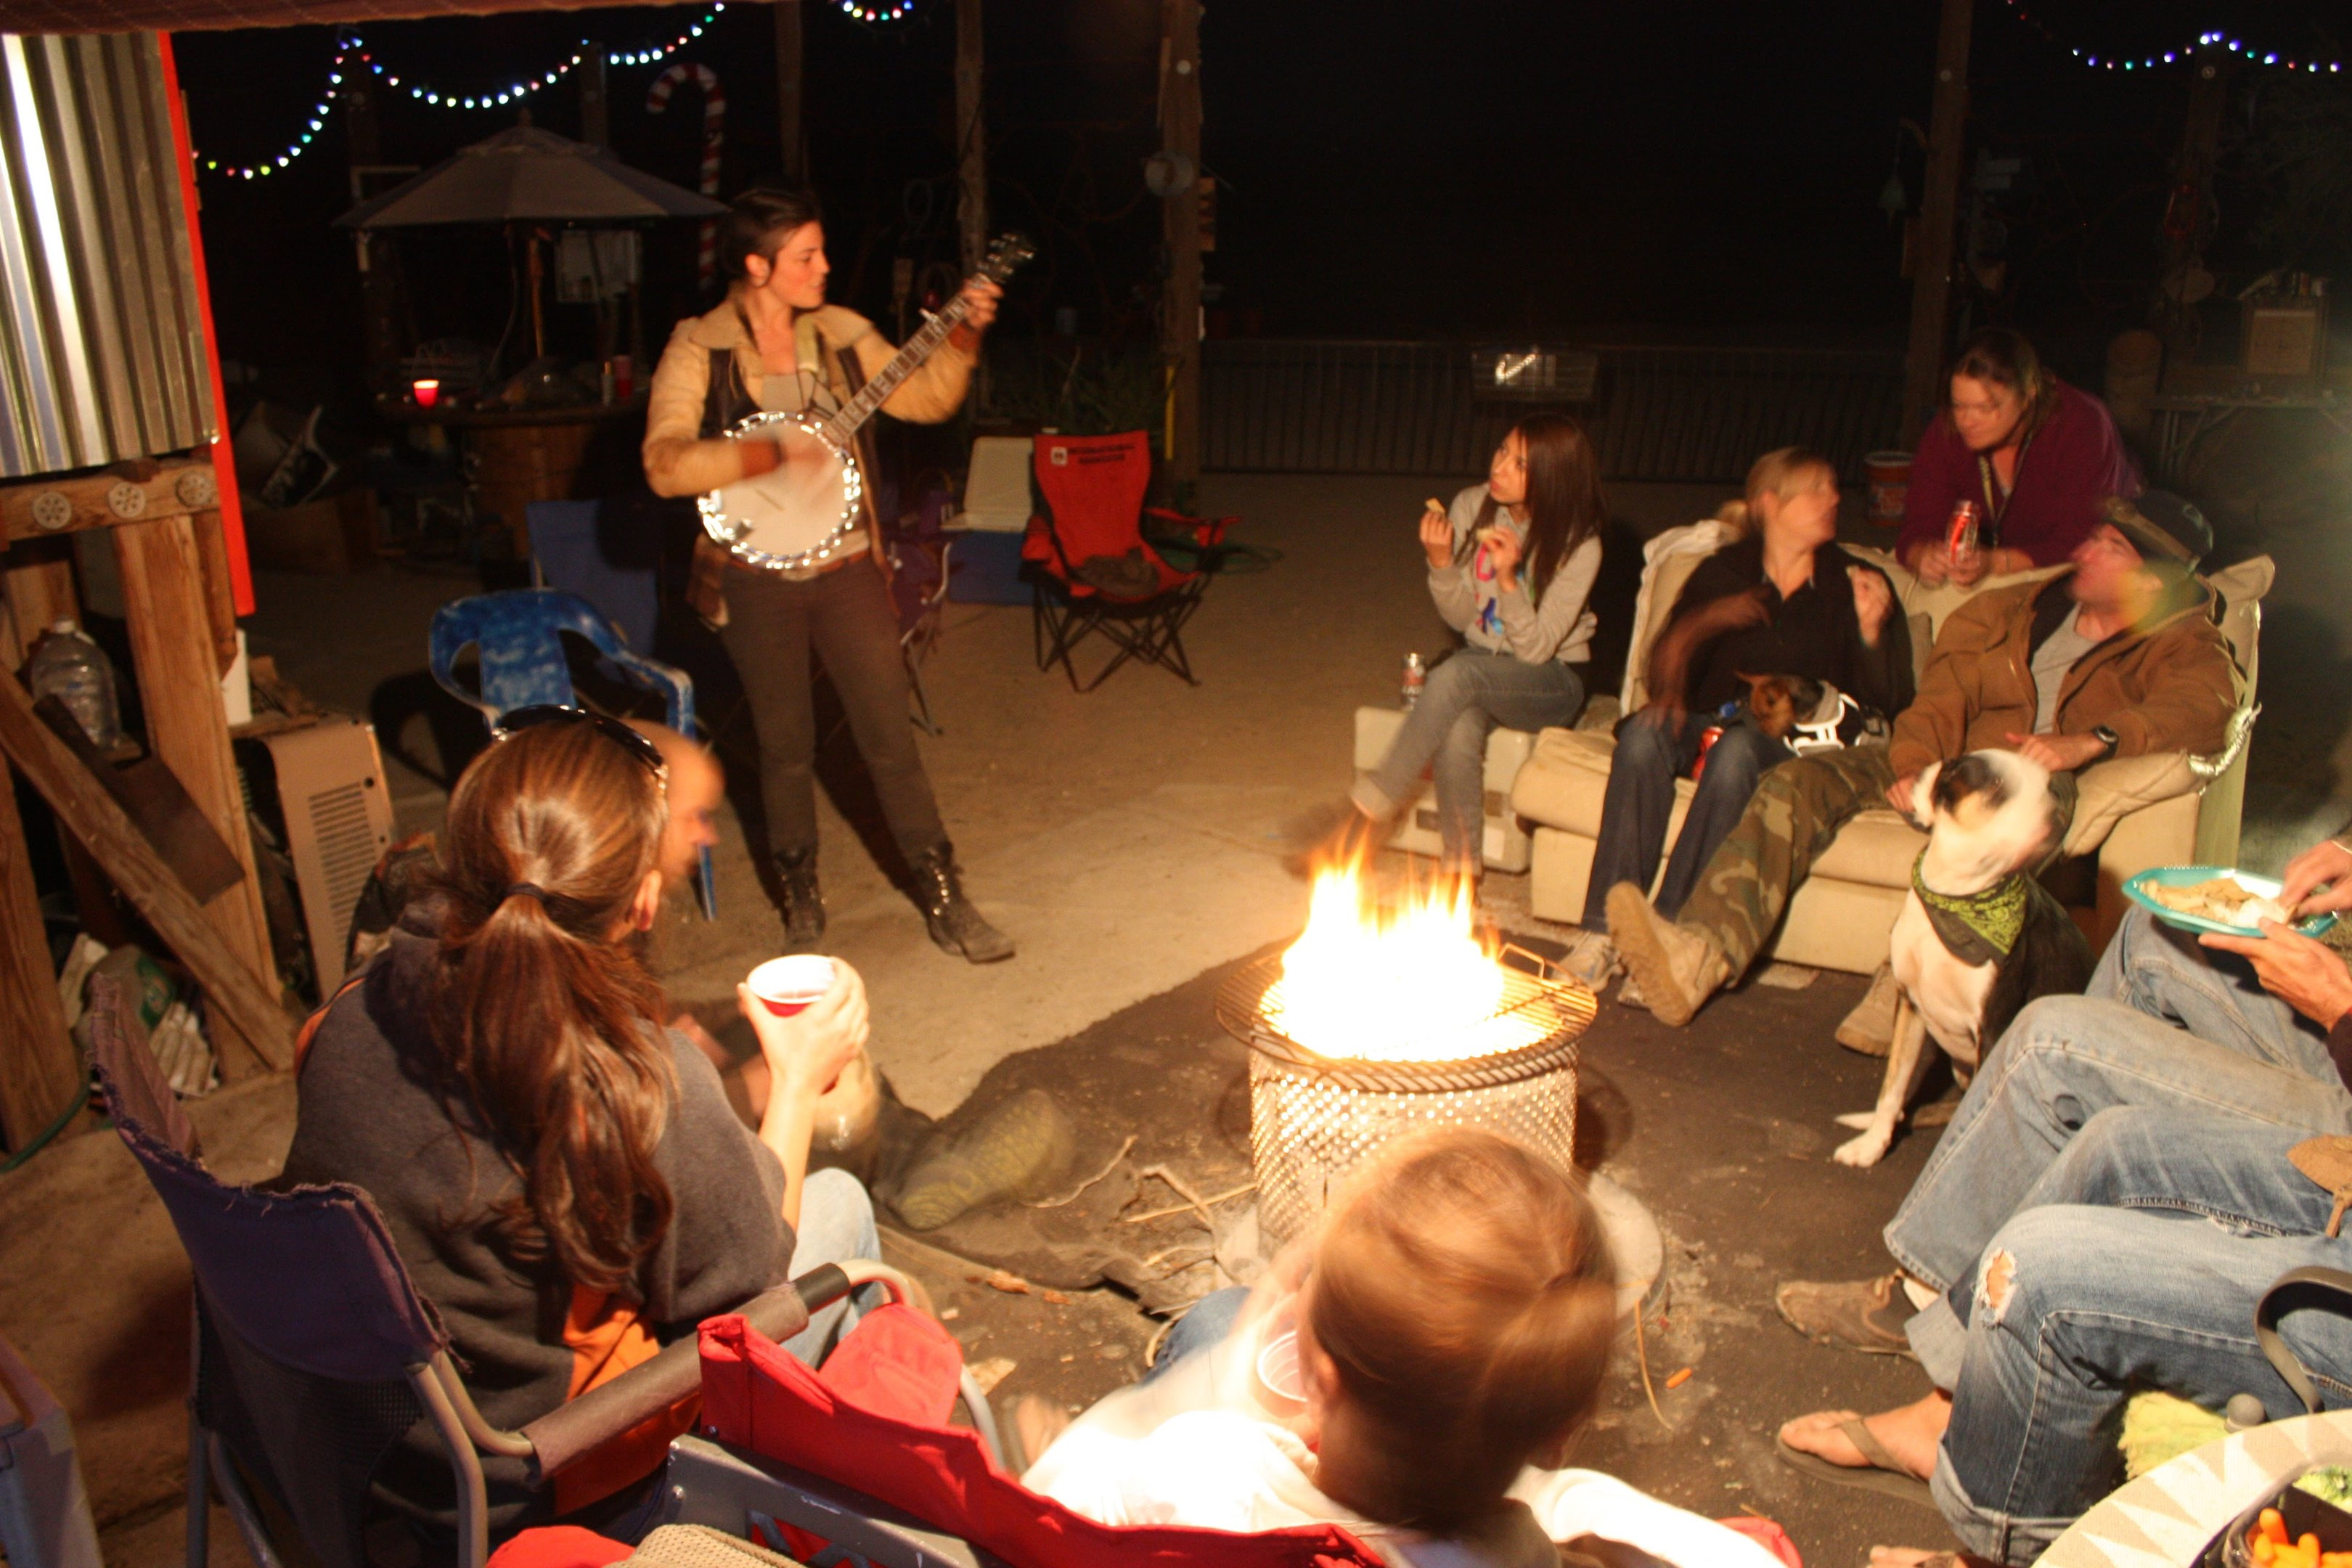 untitled-shoot-099-december-31-2011-jpg.44920_An Introduction To East Jesus_Squatting_Squat the Planet_8:13 PM